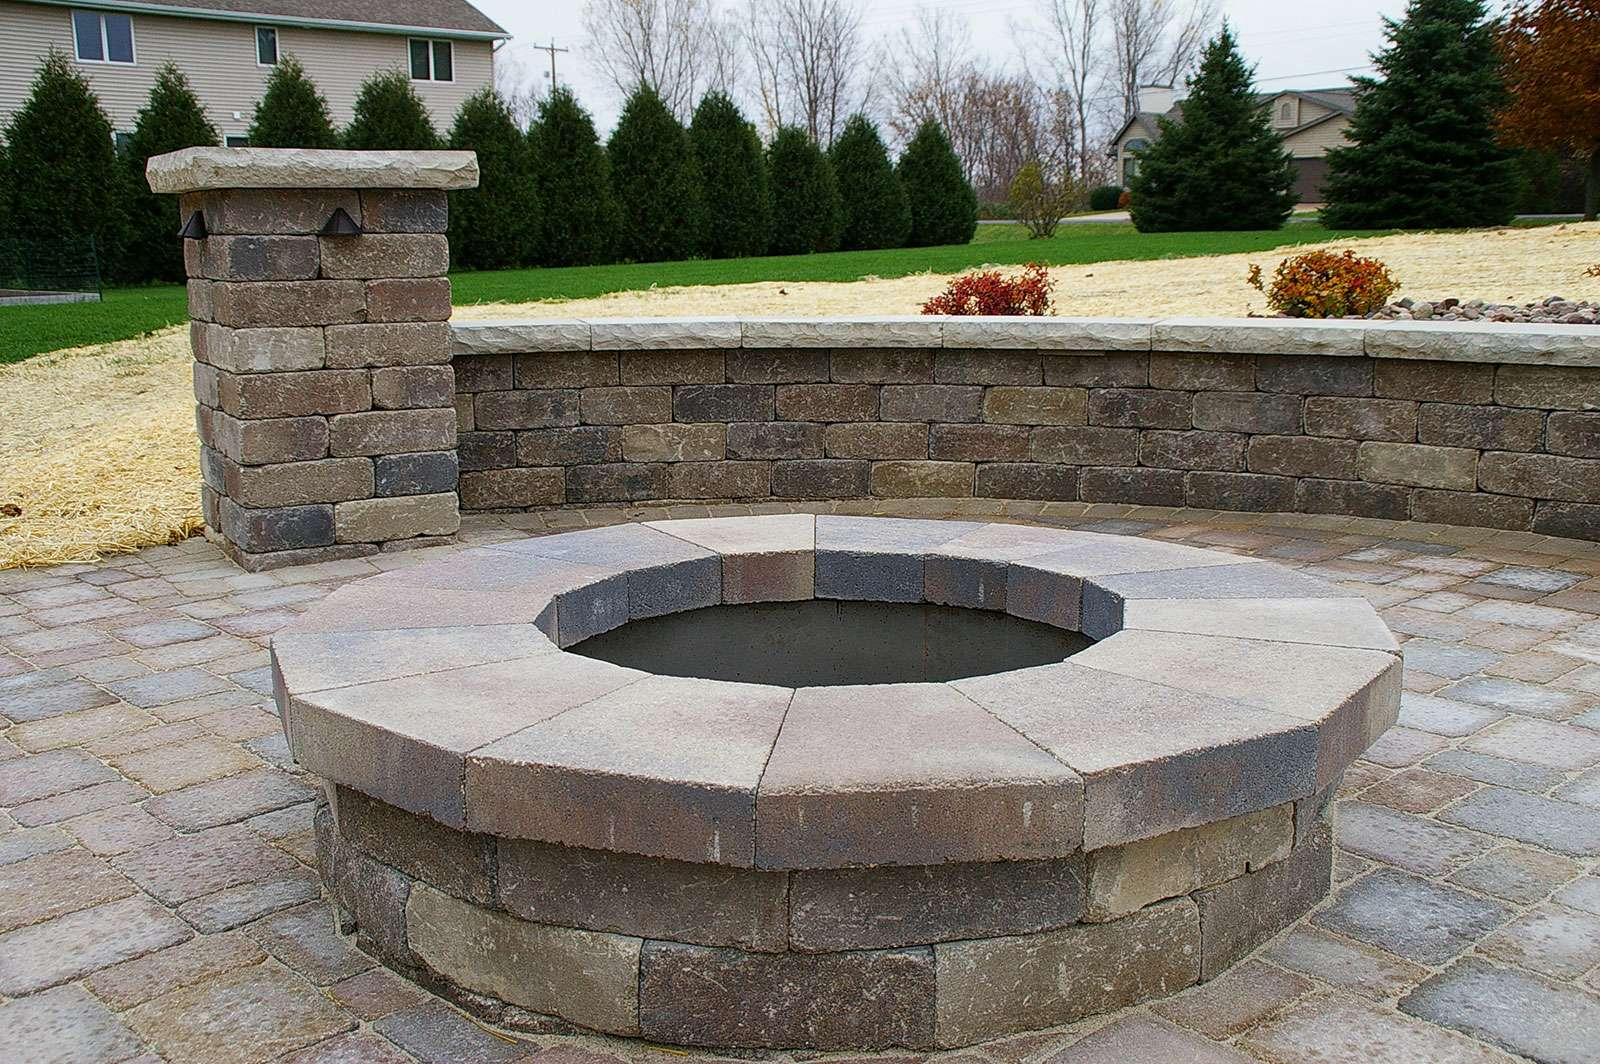 Little Chute Wi >> Fire Pit and Landscape Design, in Appleton, WI